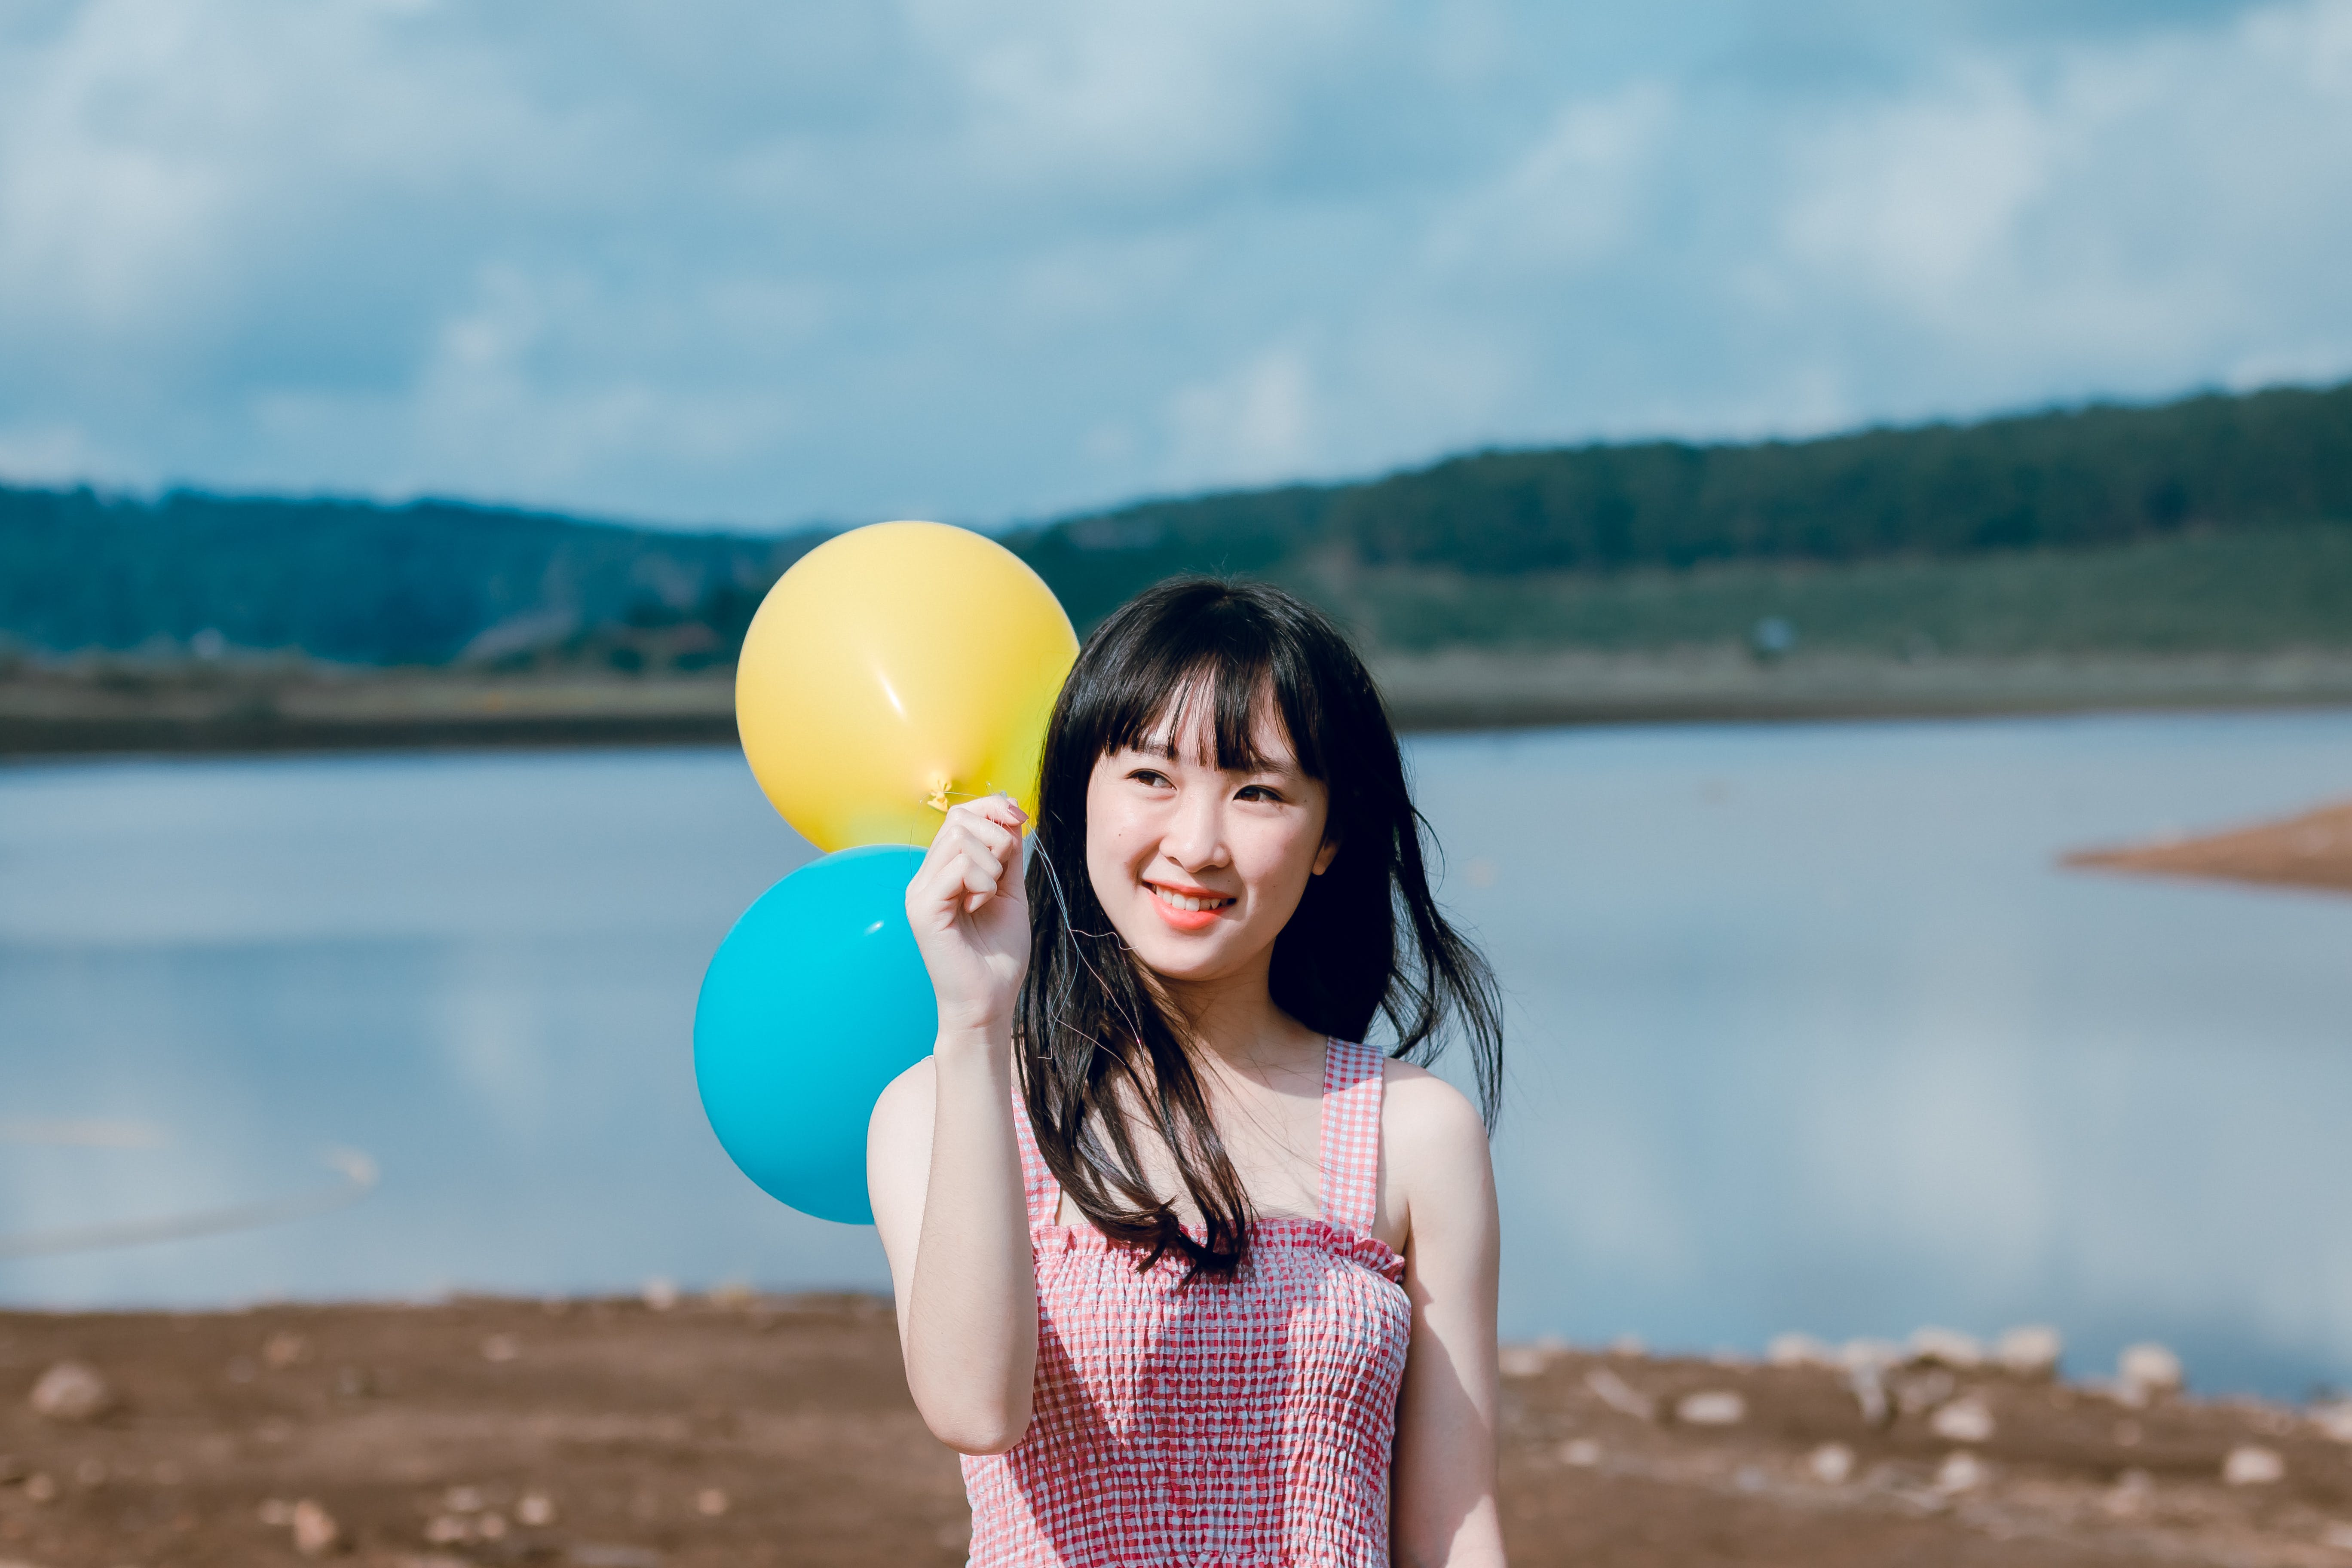 Woman in Pink Thick Strap Top Holding a Yellow and Blue Balloons